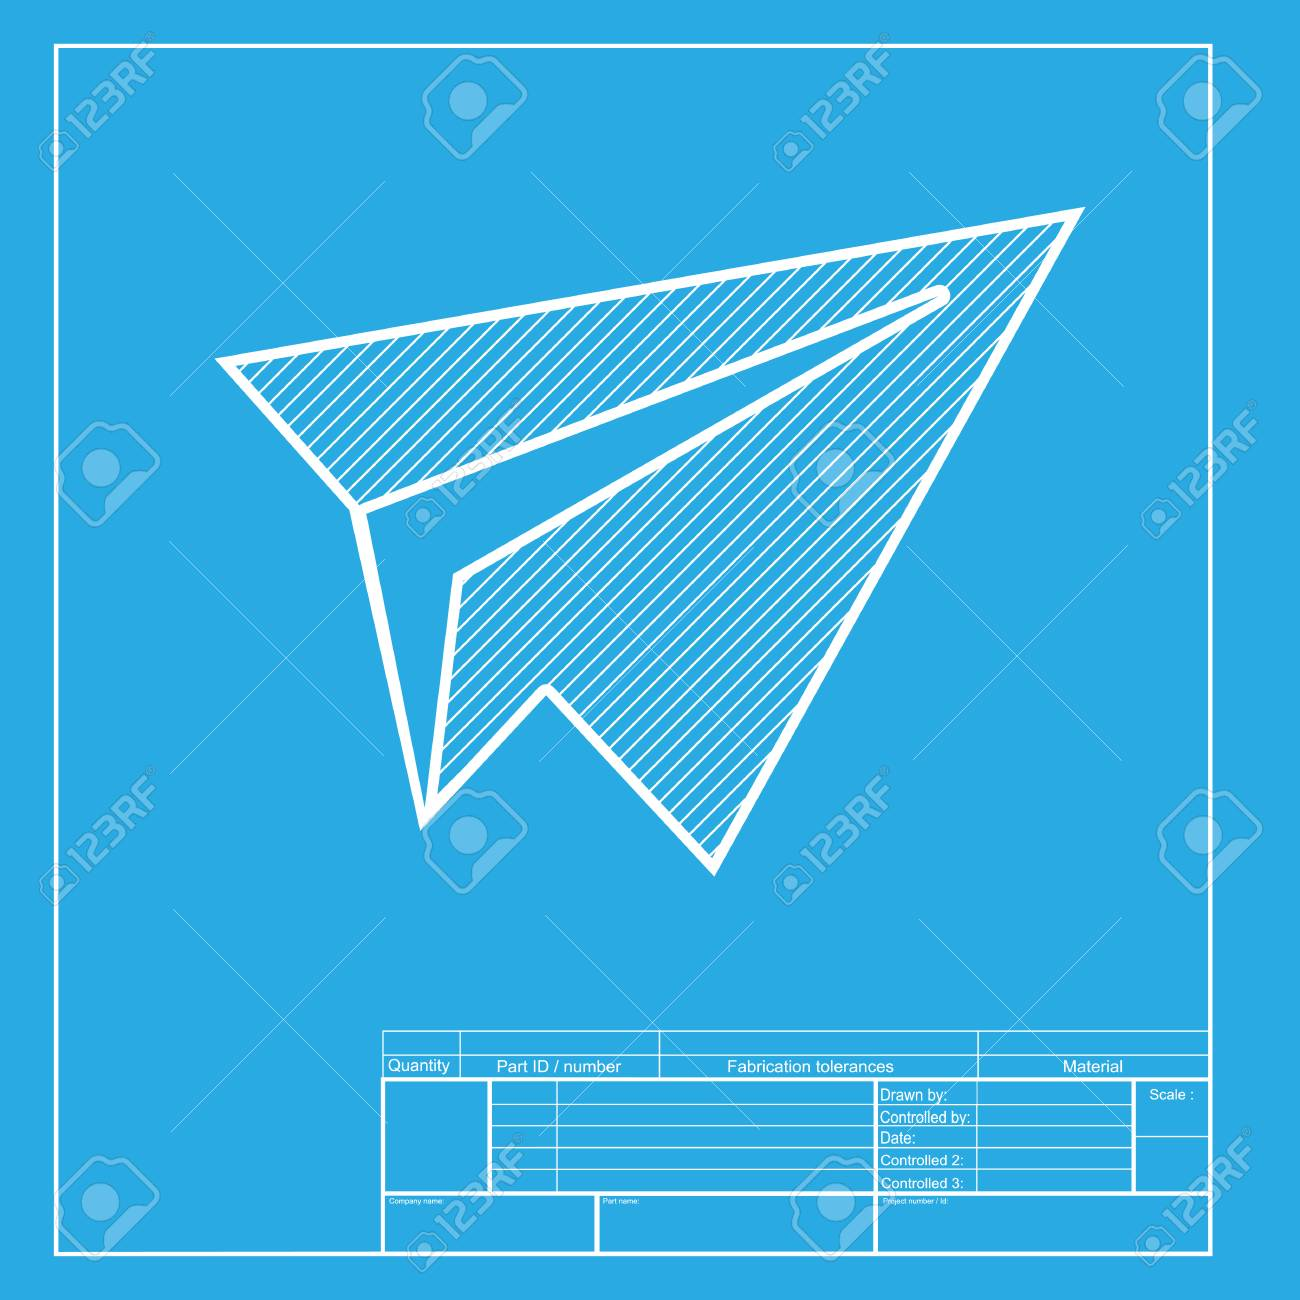 Paper airplane sign white section of icon on blueprint template paper airplane sign white section of icon on blueprint template stock vector 58754726 malvernweather Choice Image